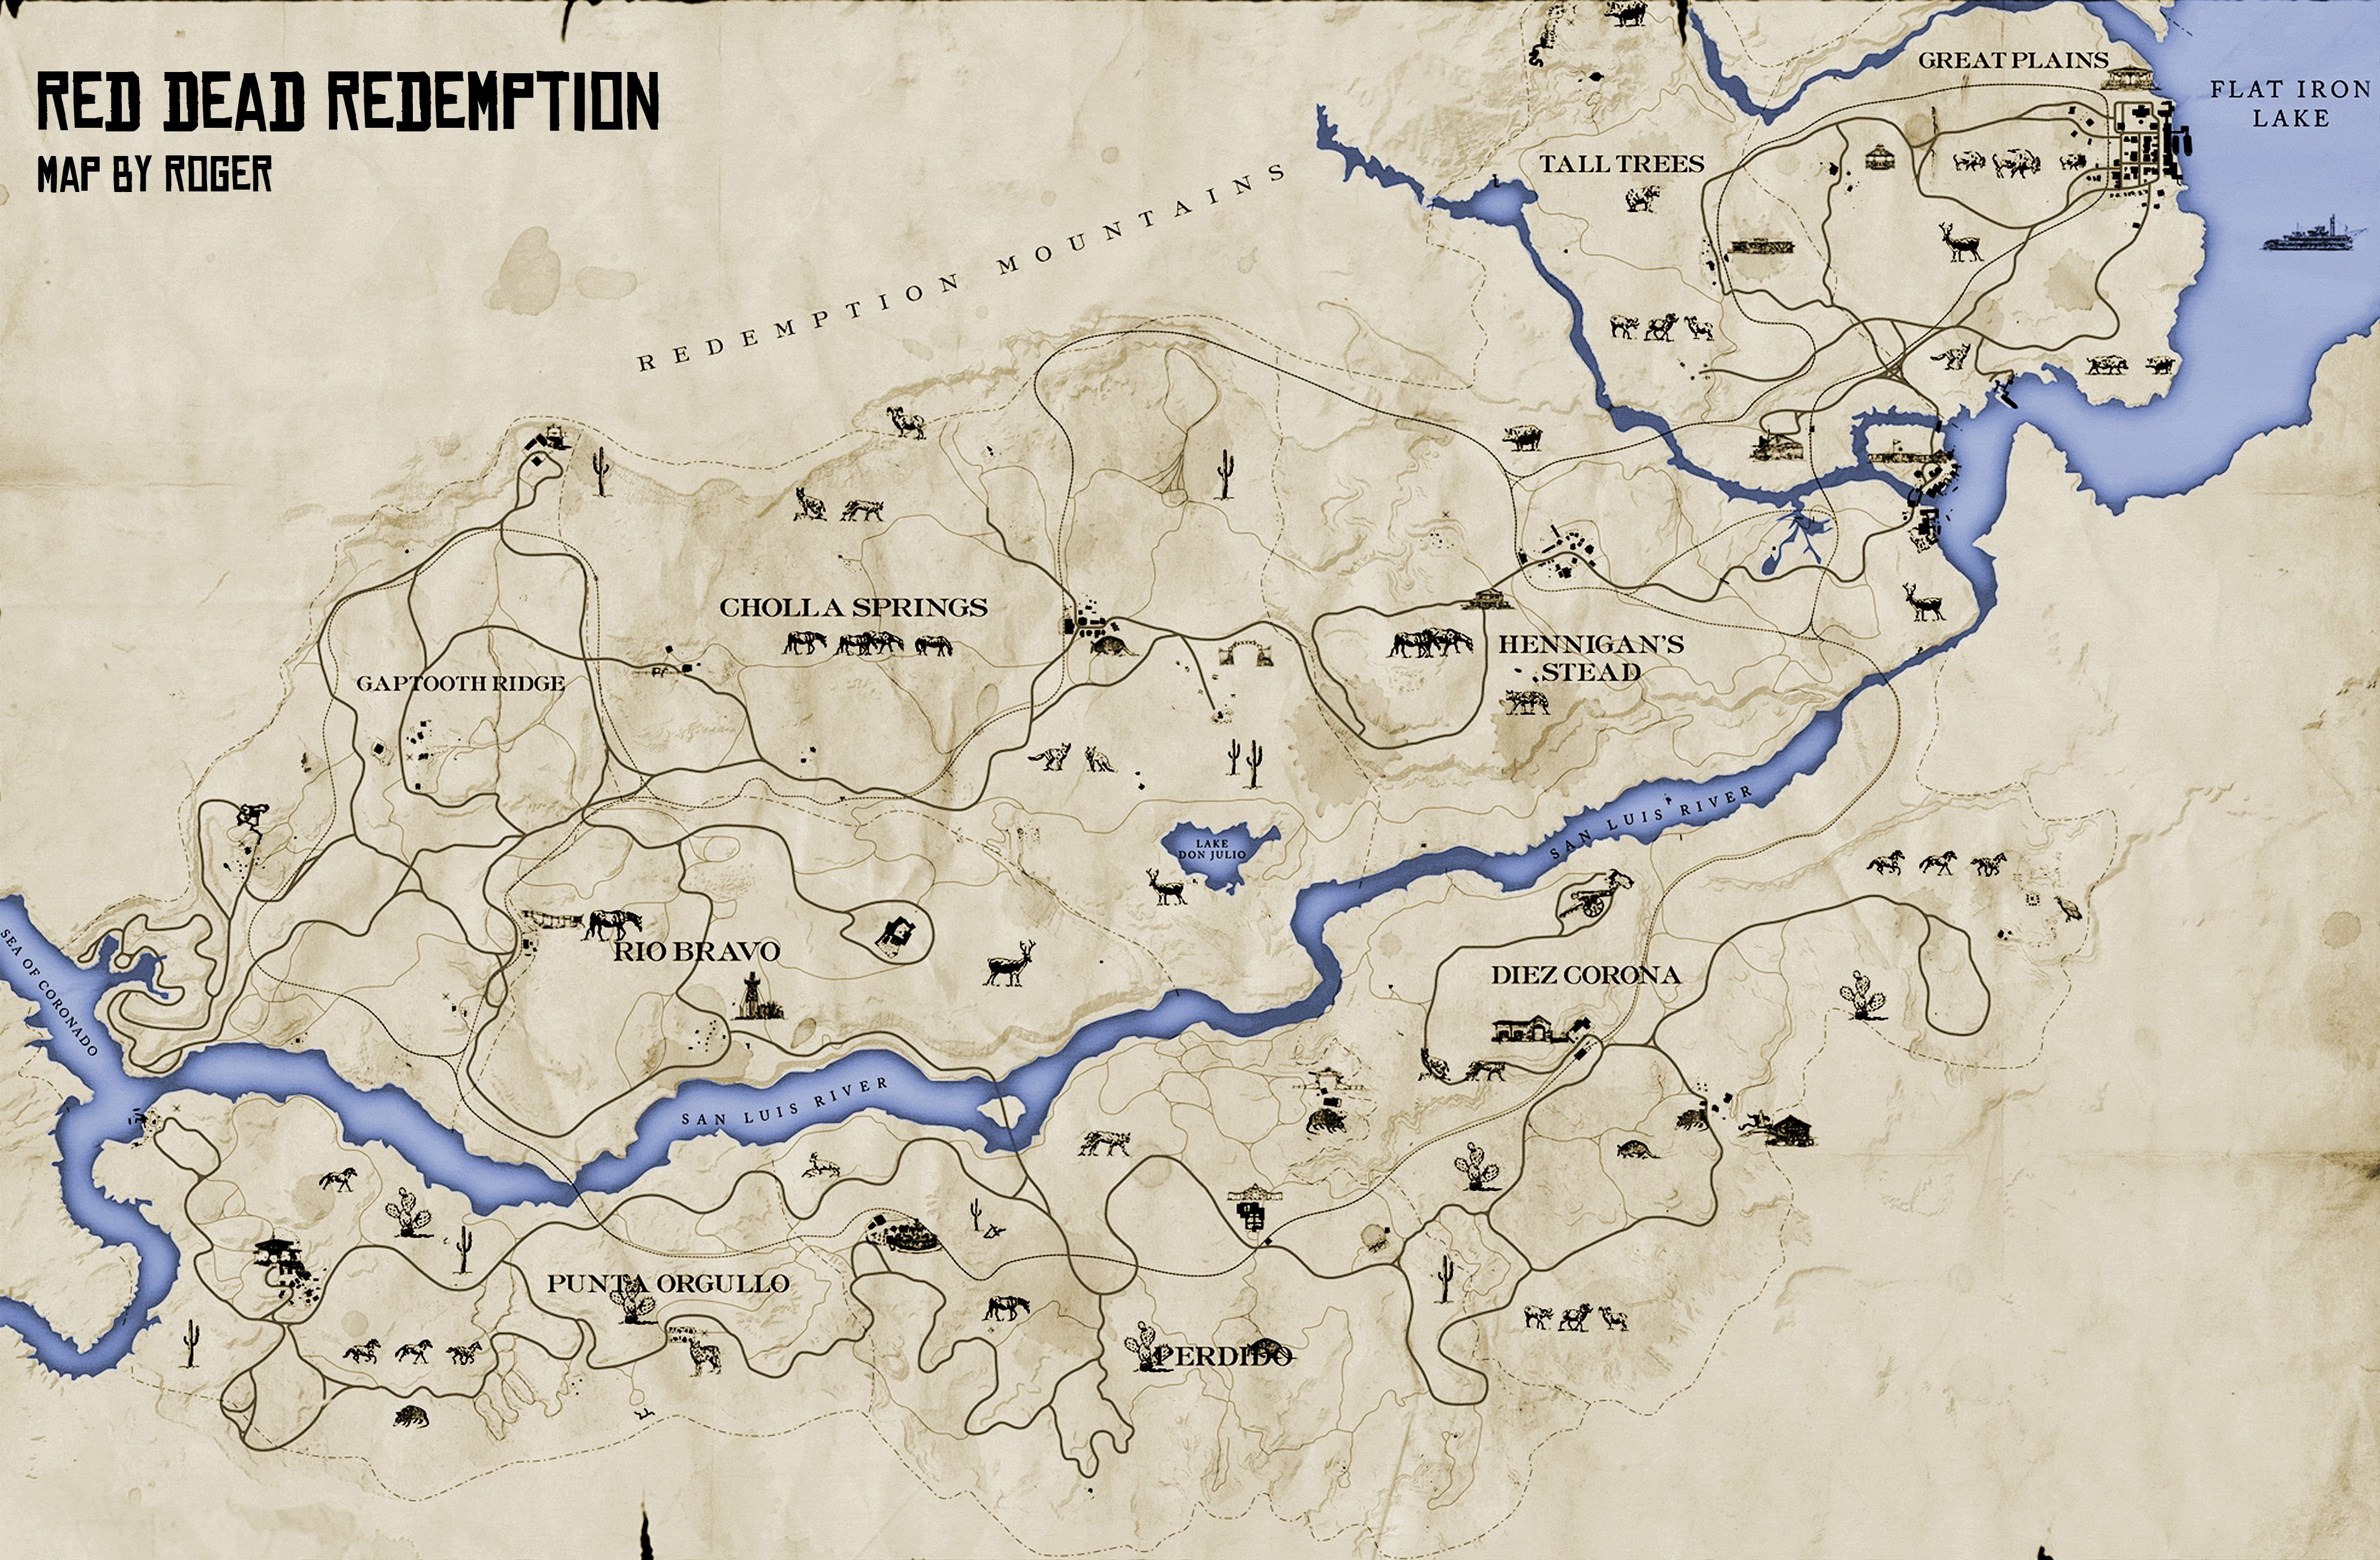 The Original Red Dead Redemption Map is in Red Dead Redemption 2